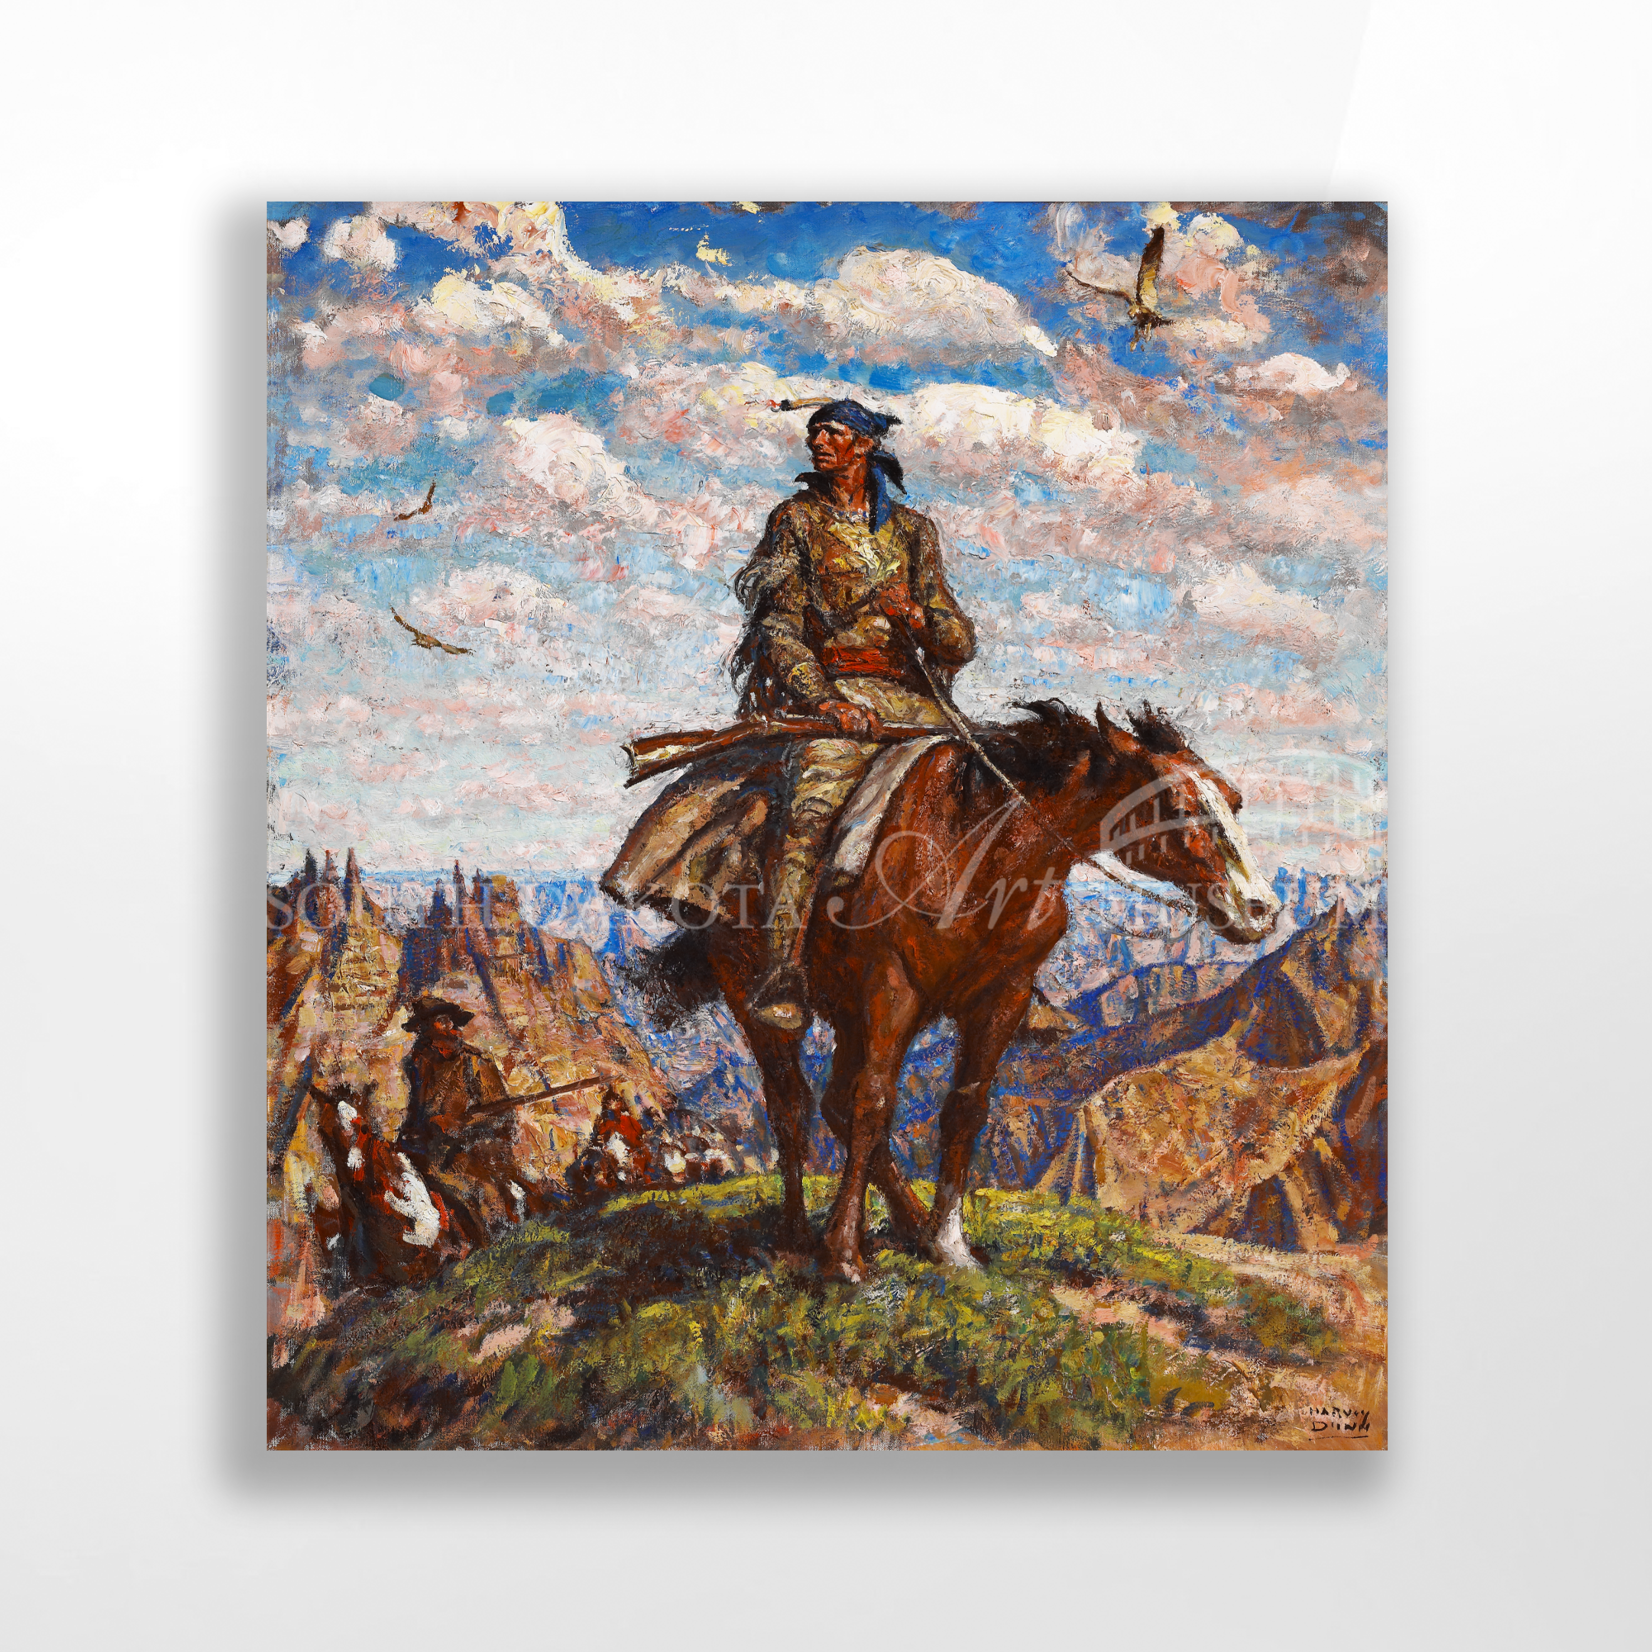 Dunn Reproductions Jedediah Smith in the Badlands